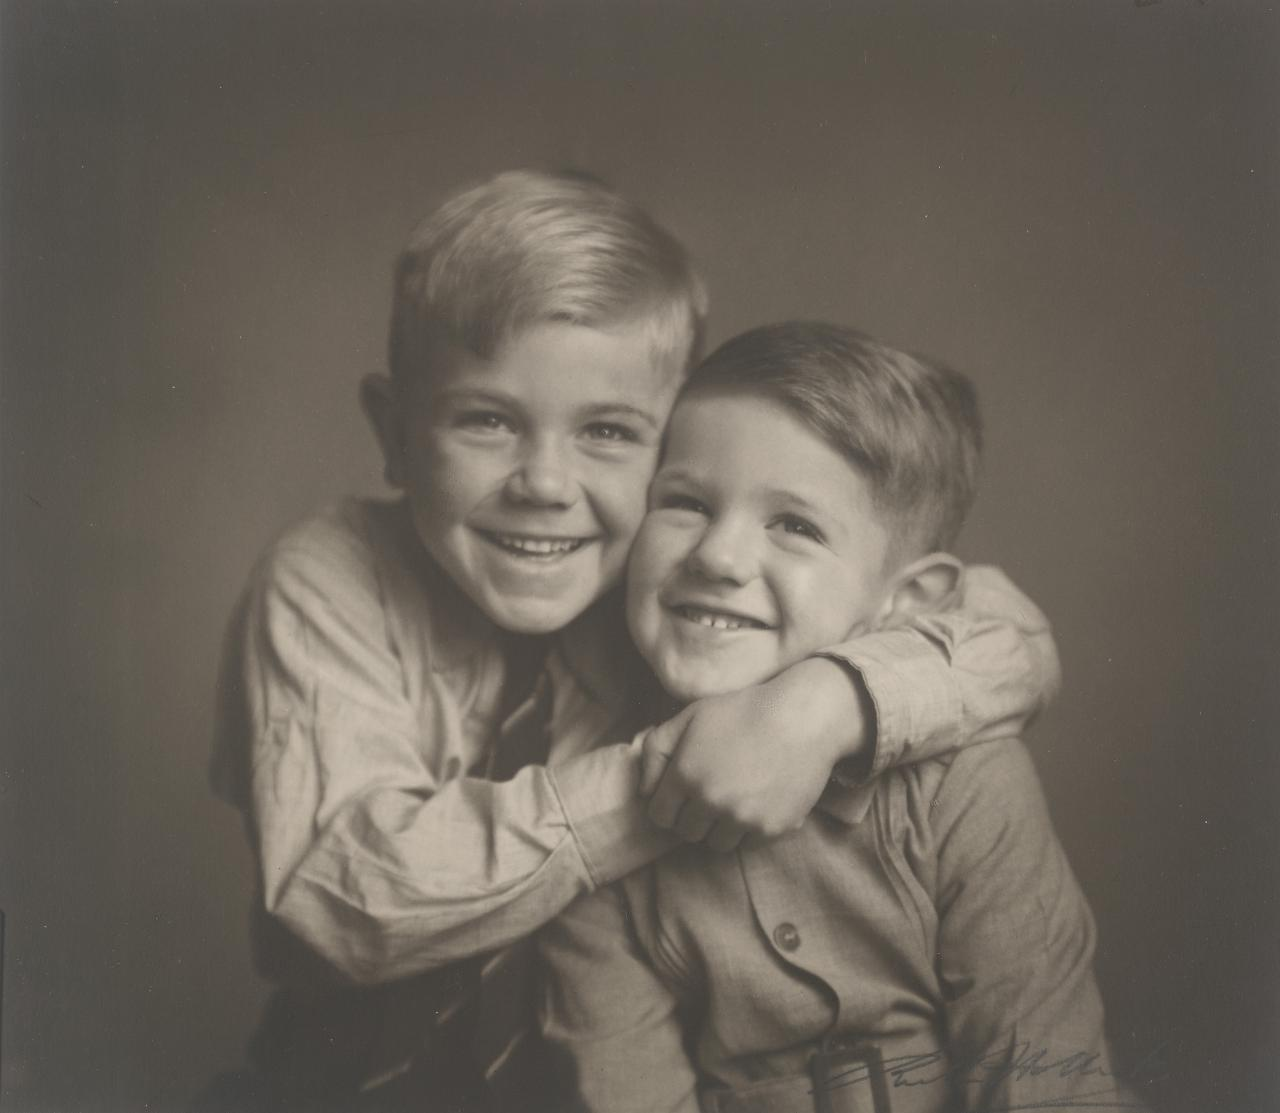 Untitled (Two young boys)